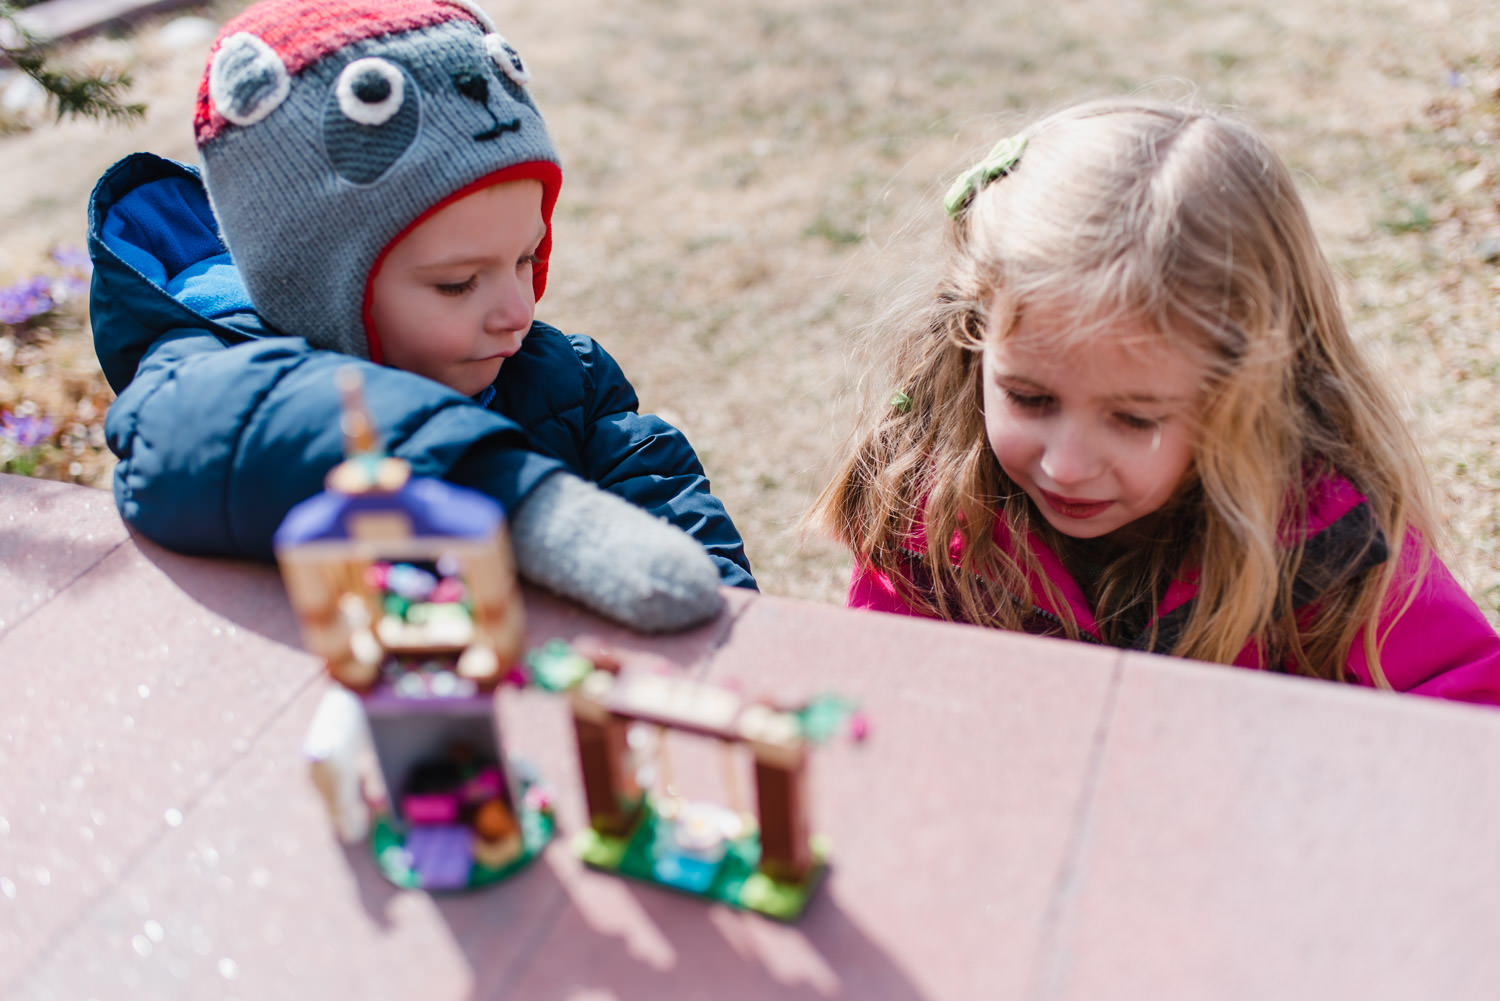 Siblings play with legos in their front yard.